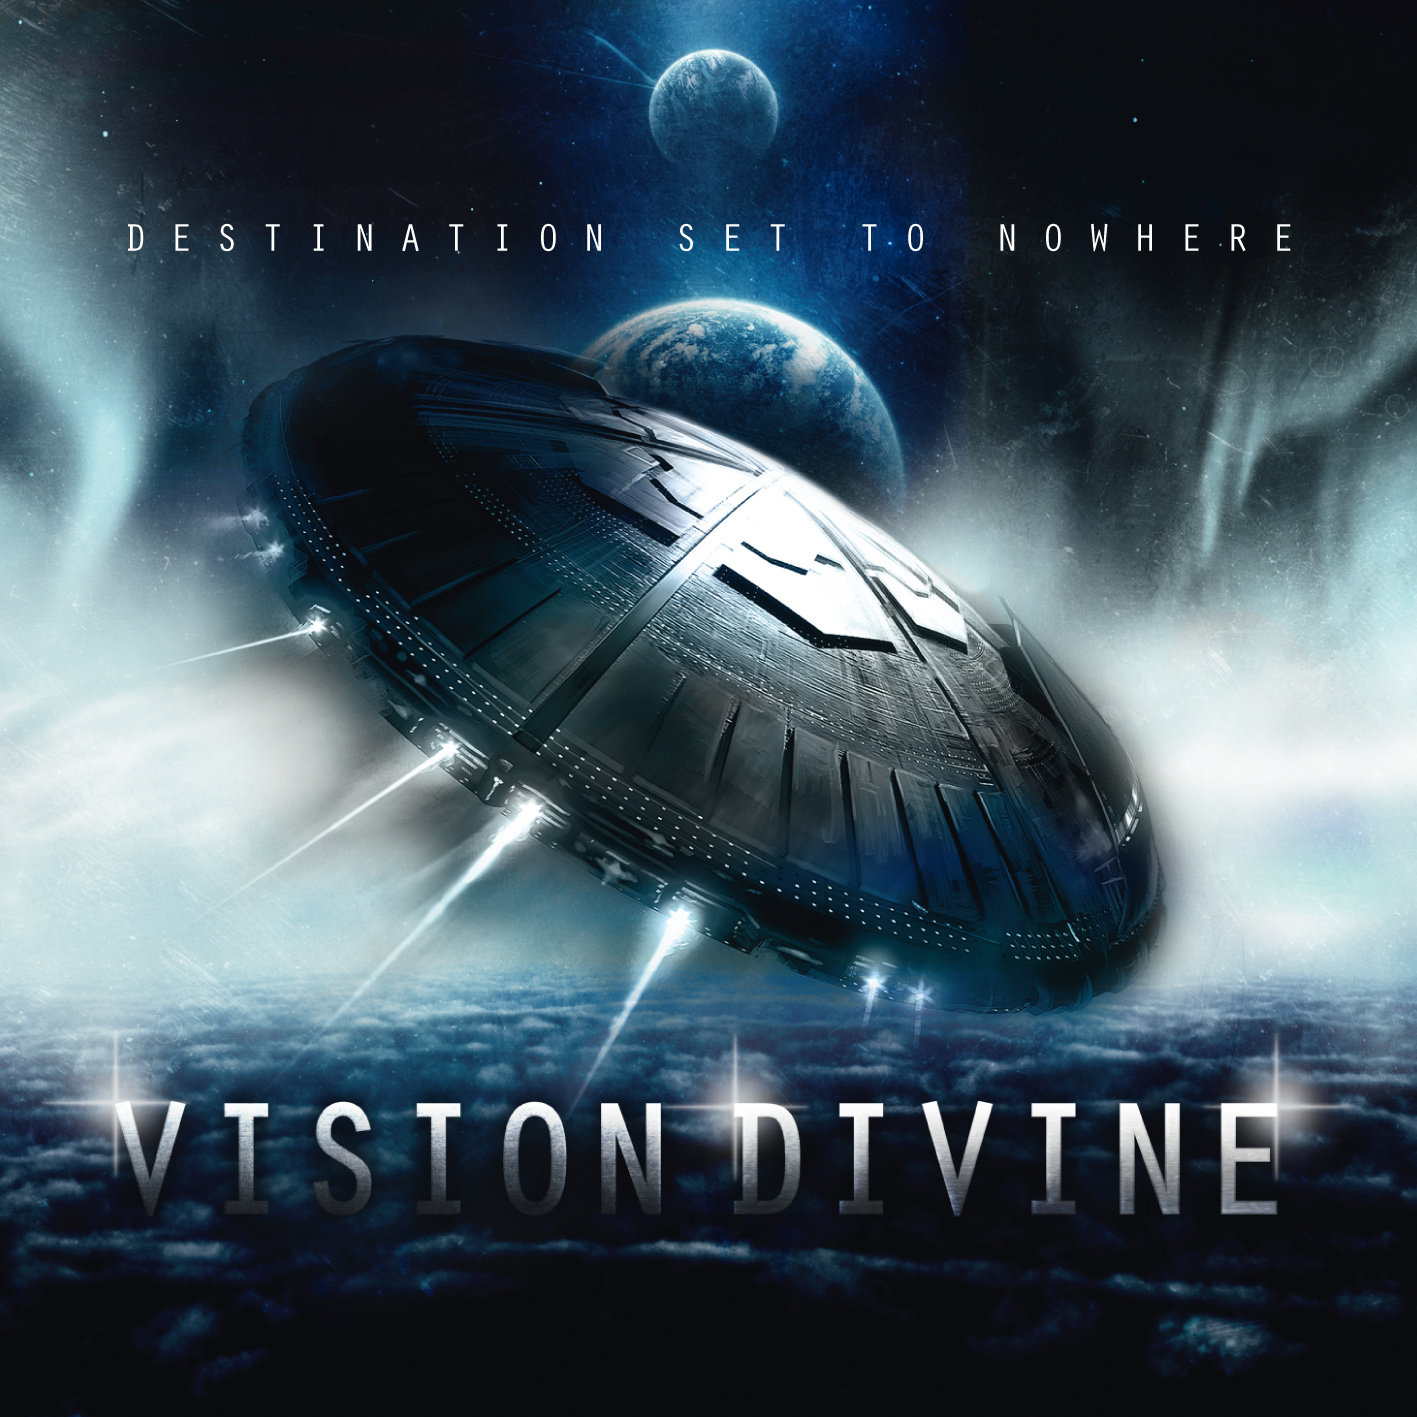 Vision Divine – Destination Set to Nowhere Review